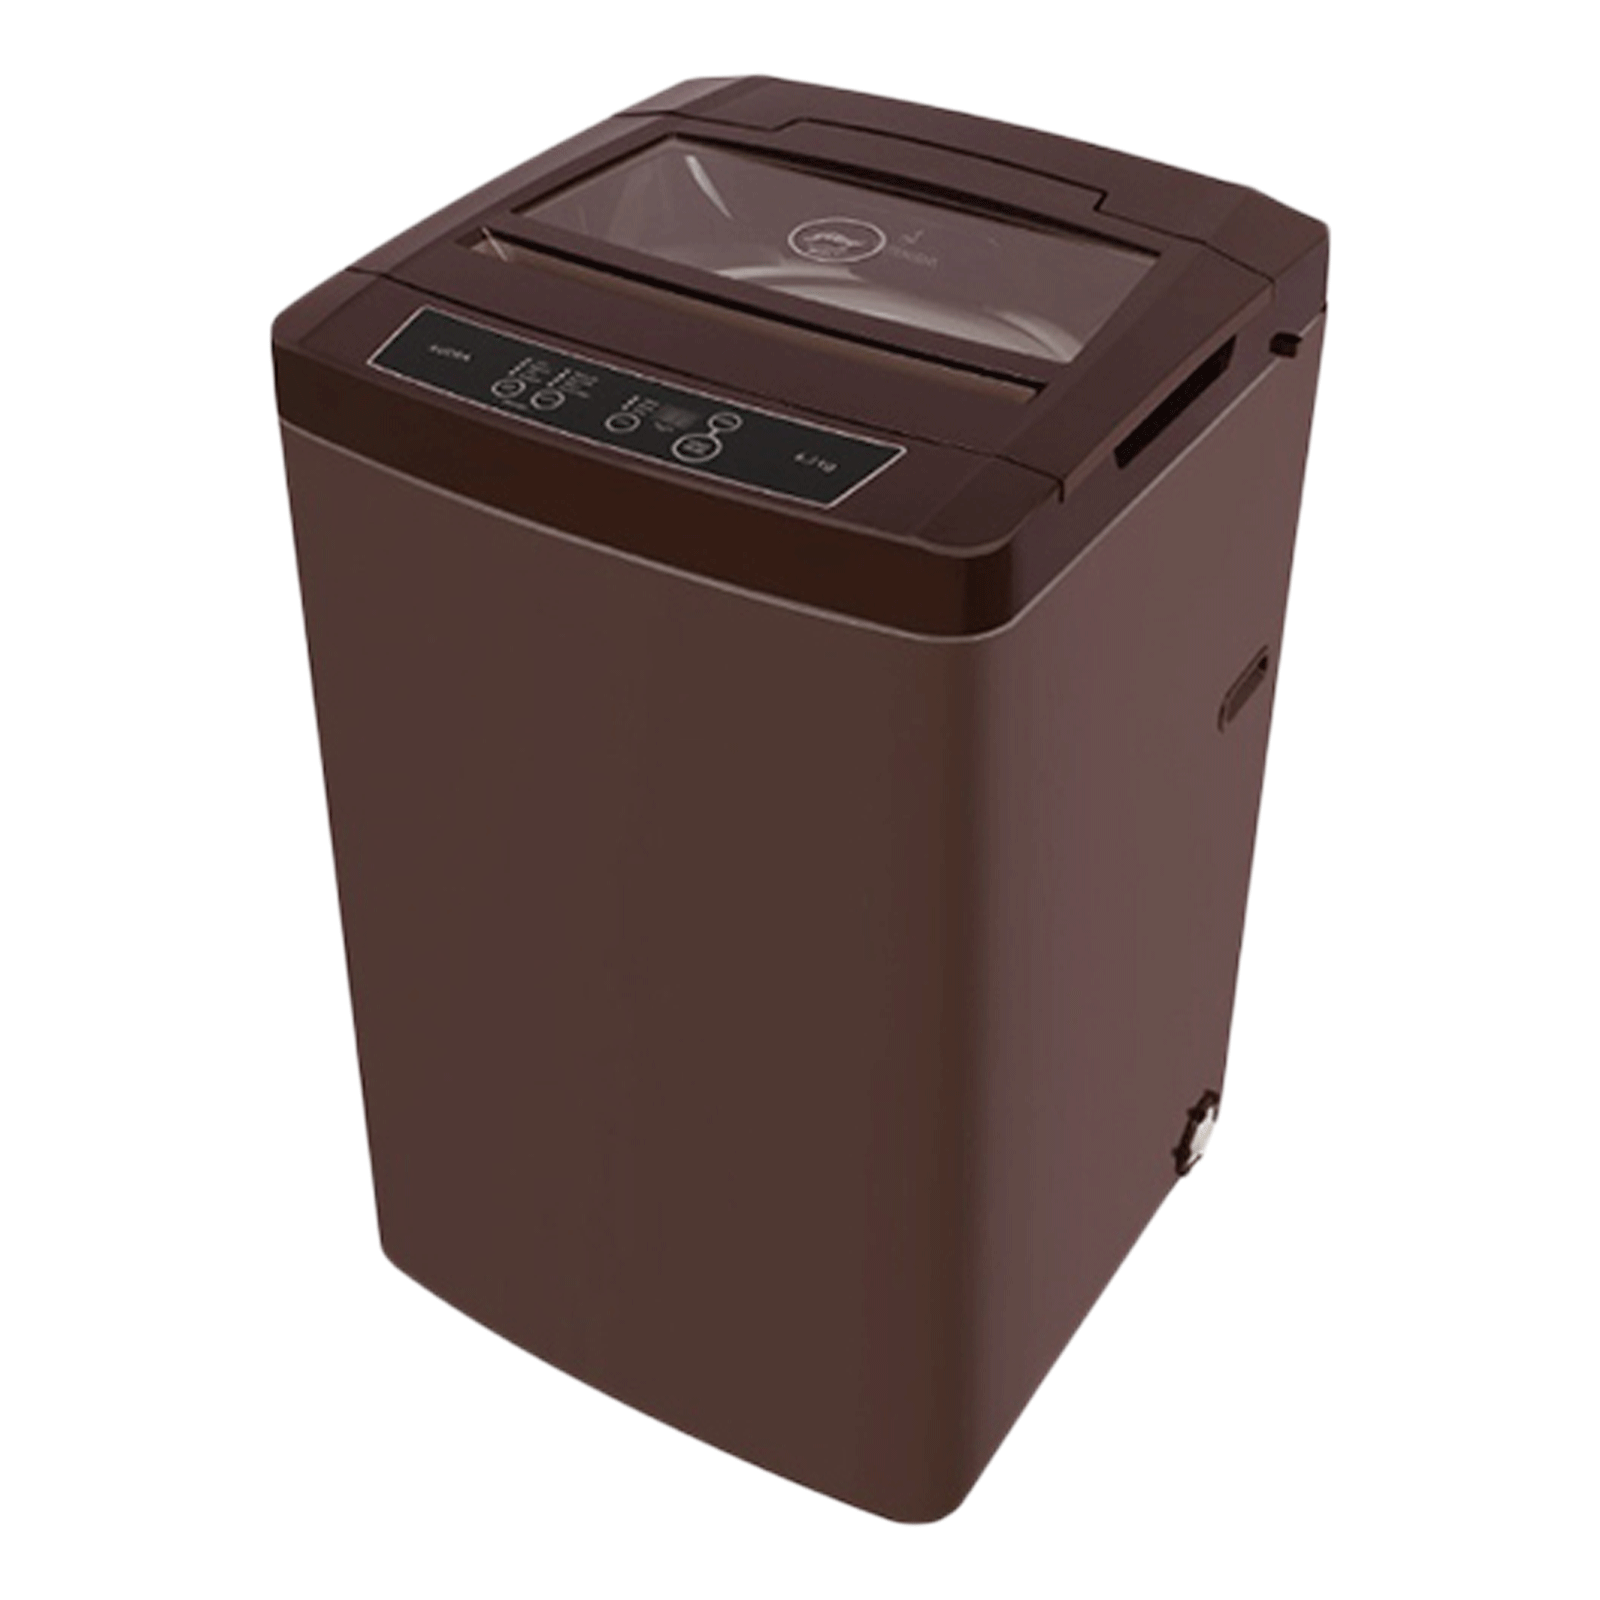 Godrej Eon Audra 6.2 kg Fully Automatic Top Load Washing Machine (Auto Balance System, WTA EON AUDRA 620 PDNMP, Cocoa Brown)_1